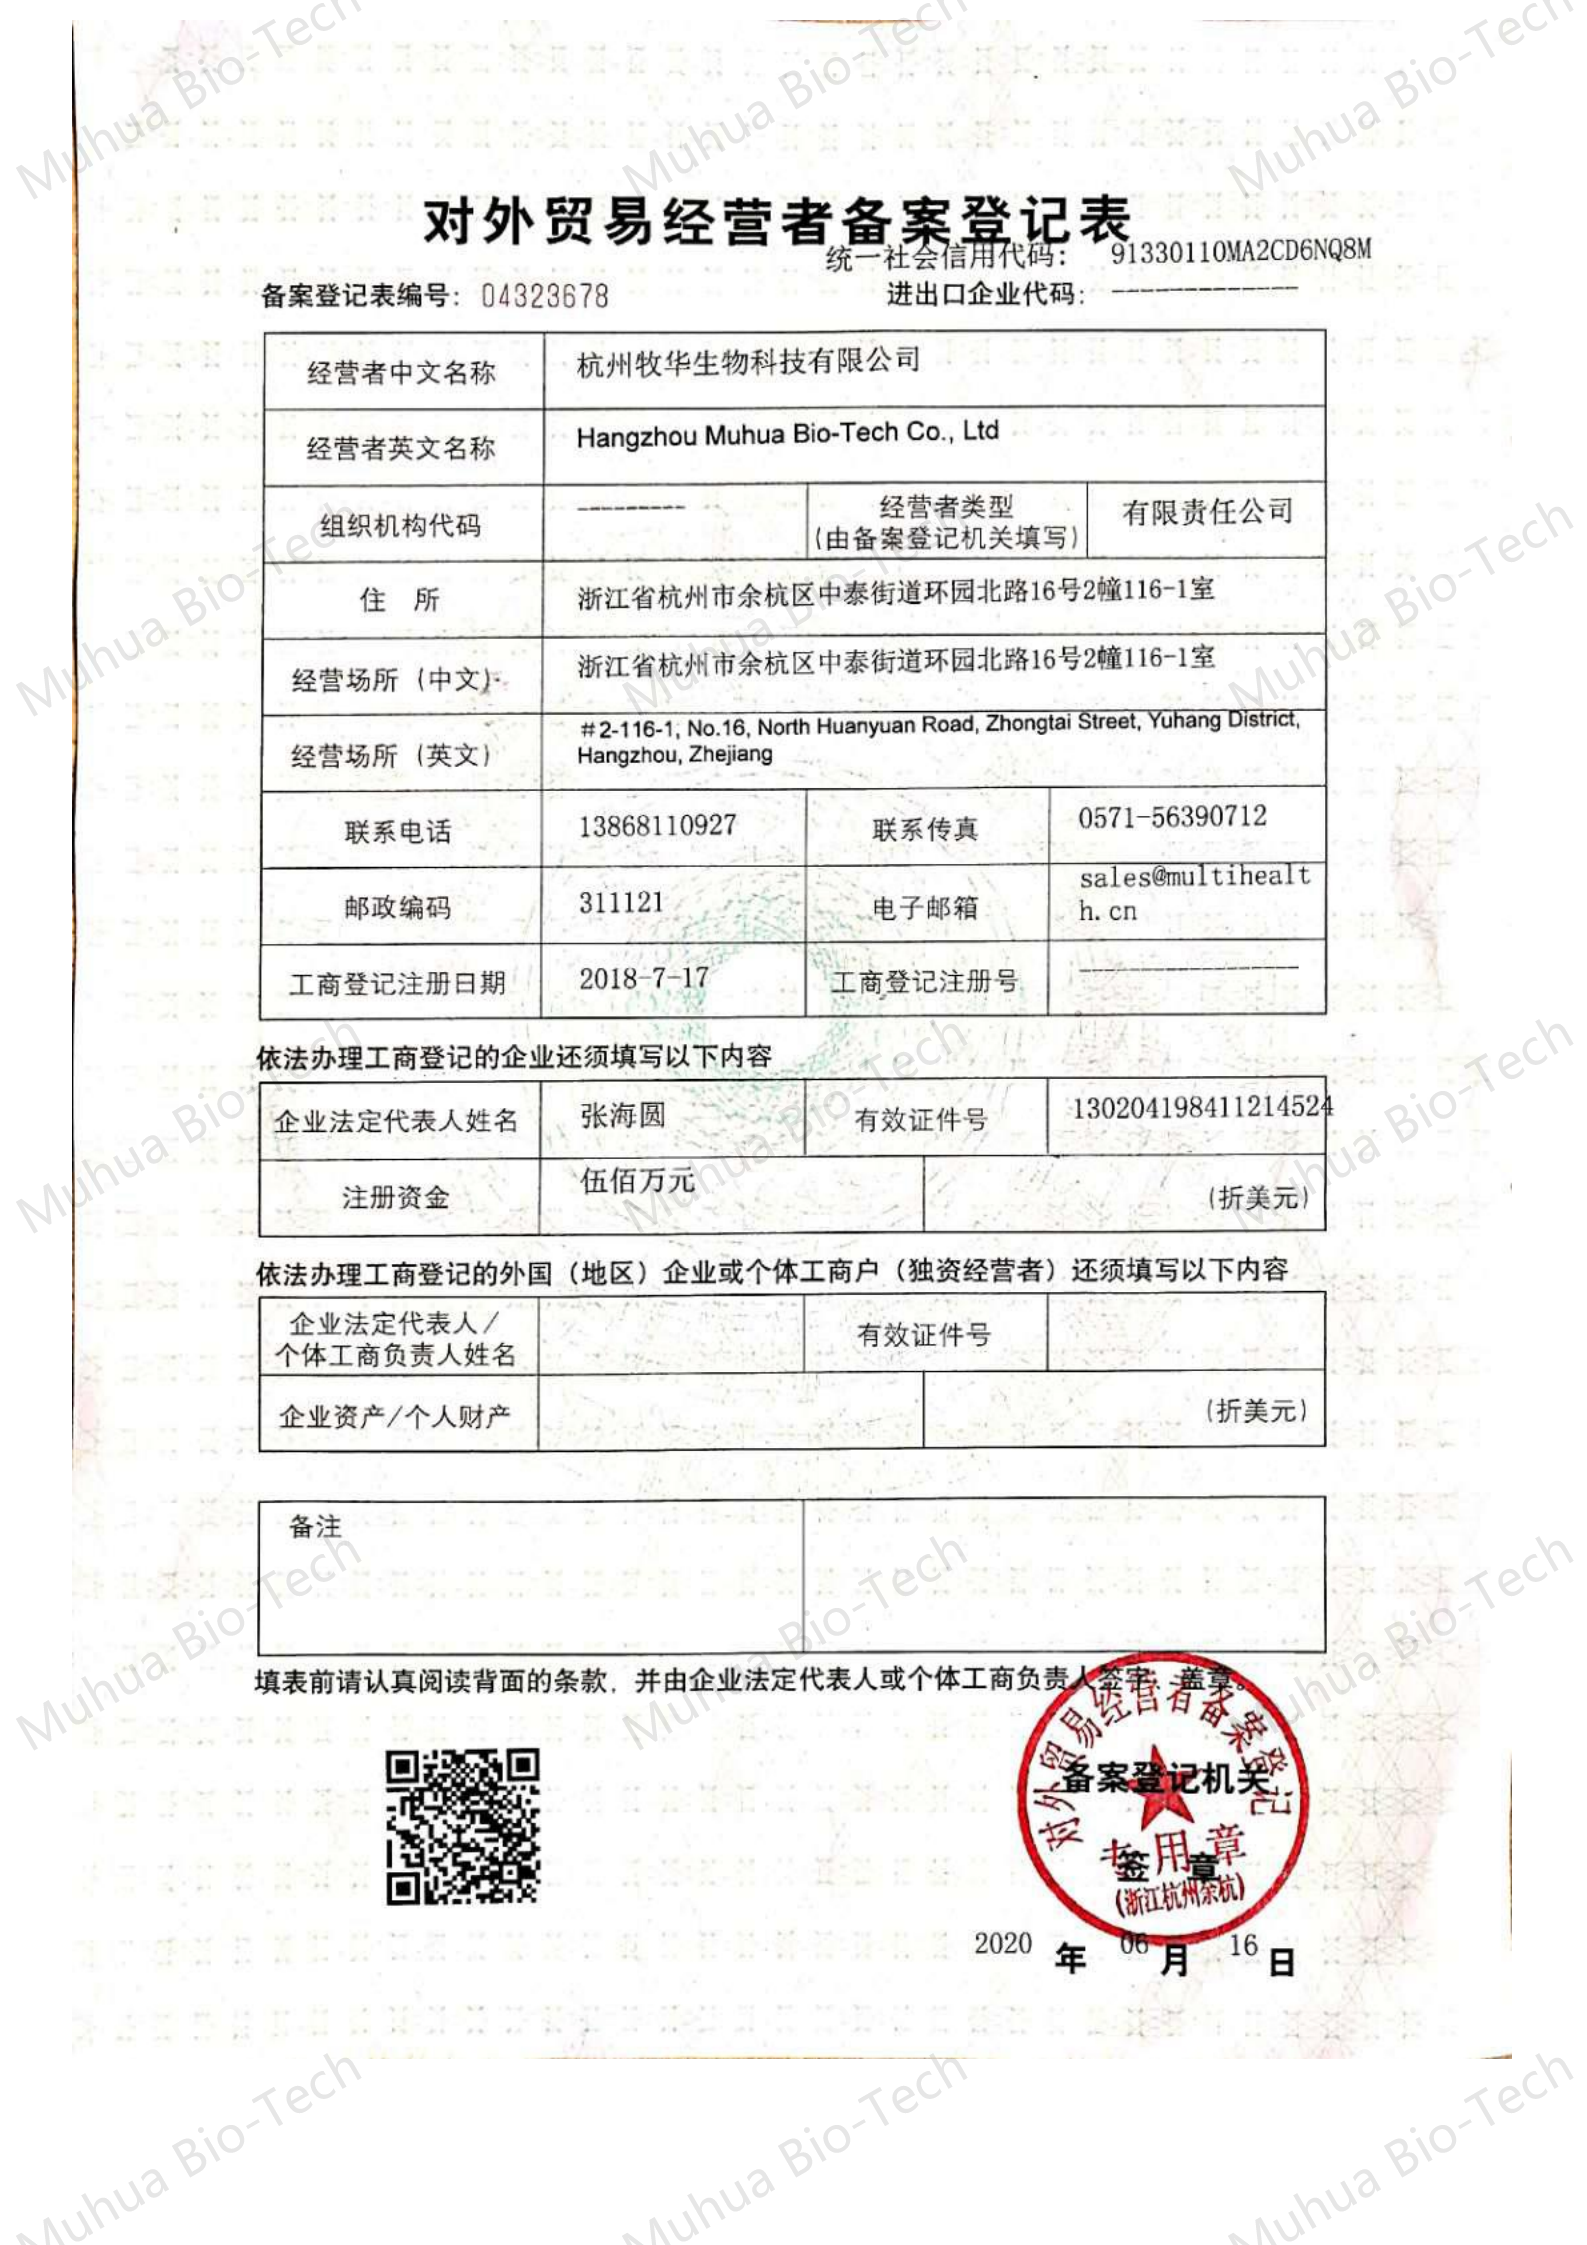 Record Registration Form for Foreign Trade Managers